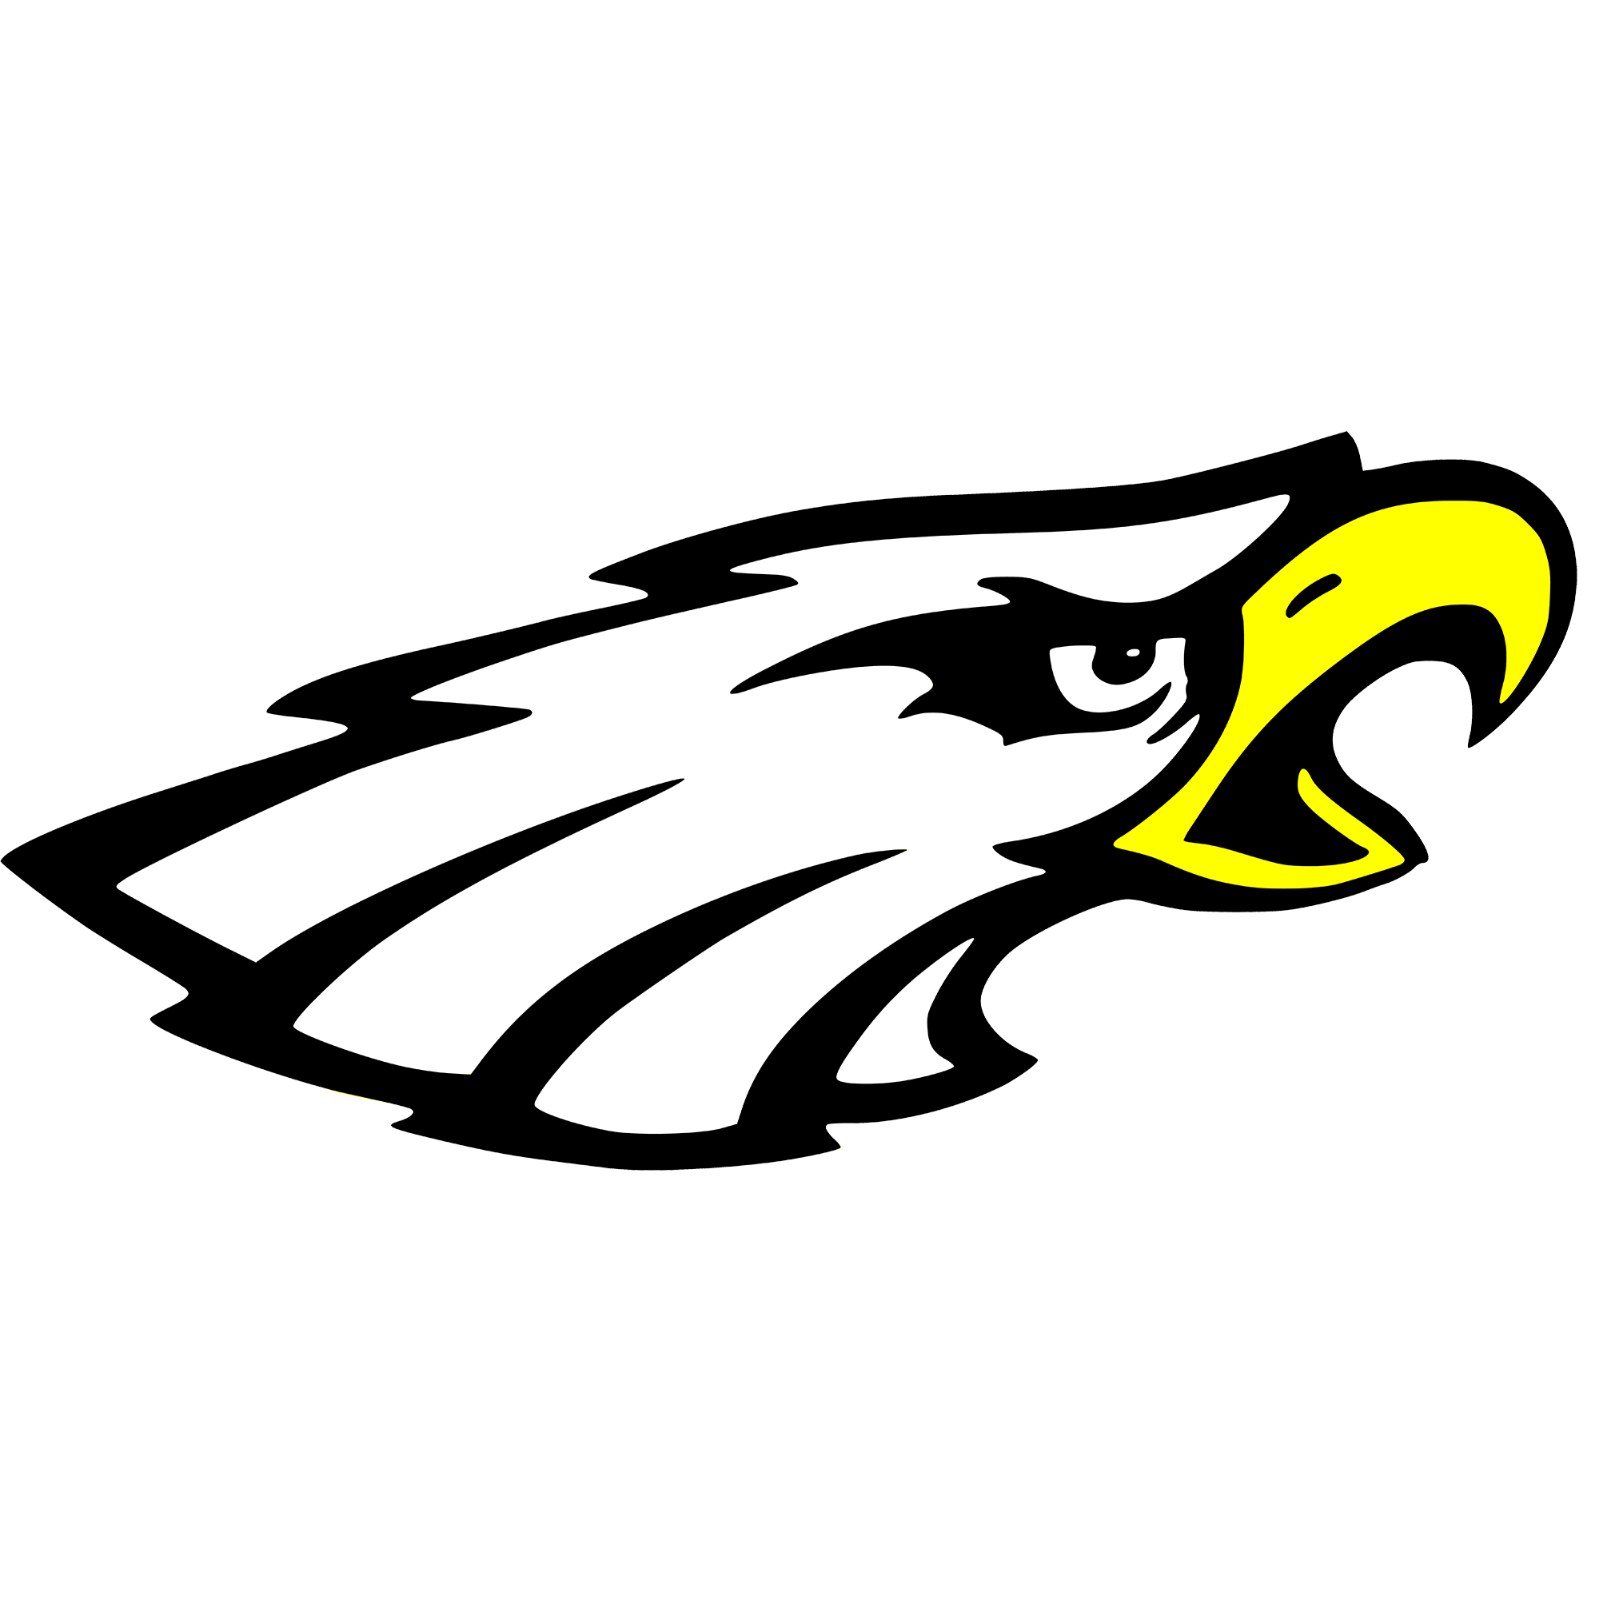 2020 BWHS Fall Athletics Tryout and Sports Information – IMPORTANT